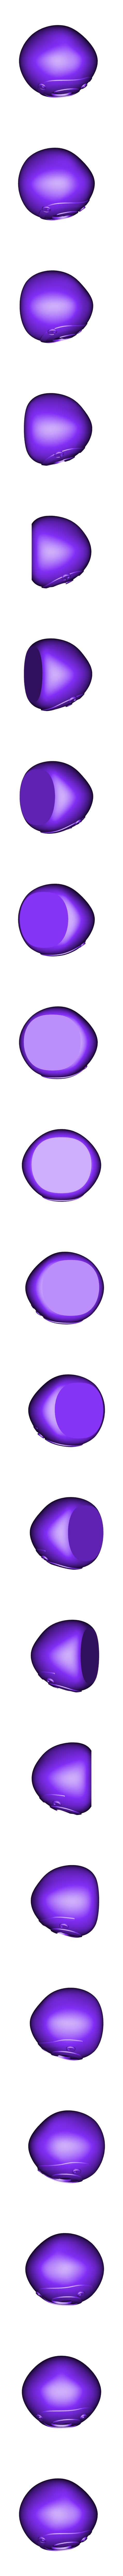 Quantum_Slime.stl Download free STL file Quantum Slime! And other variations [Crystal, Boom, Rock and Honey] • 3D printer template, ChaosCoreTech